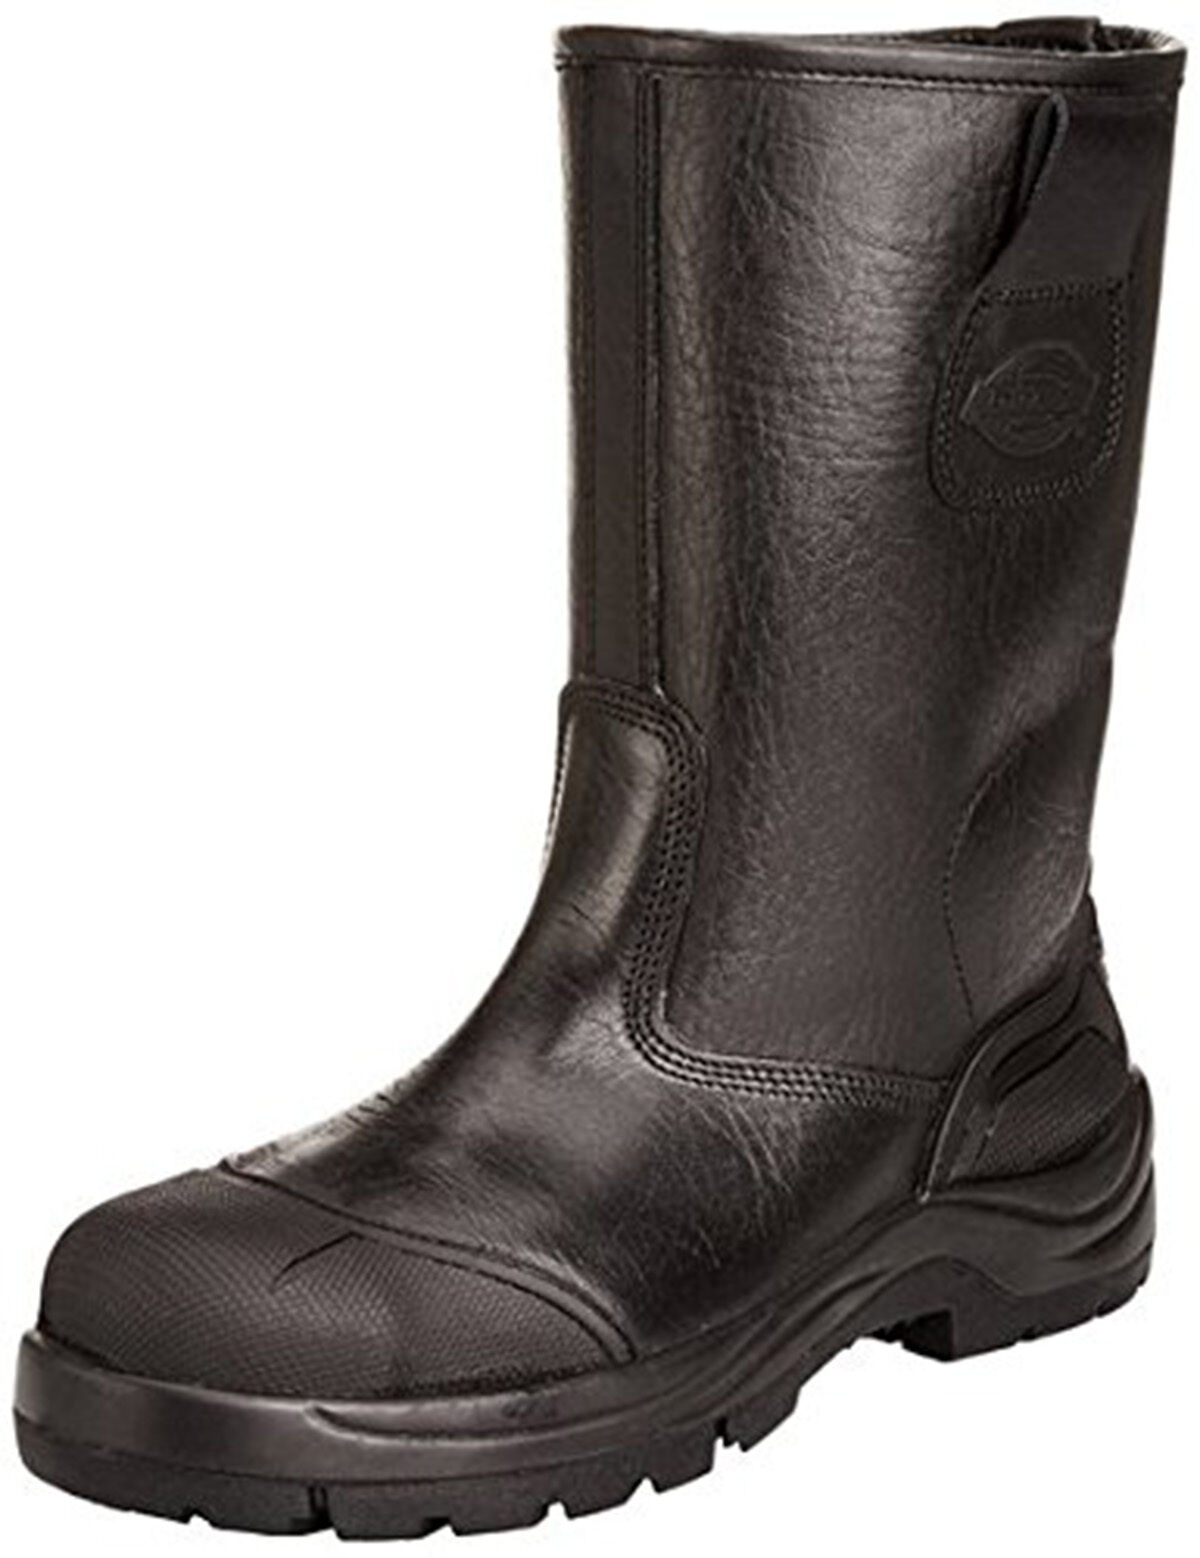 DICKIES SAFETY RIGGER BOOTS MENS STEEL TOE BLACK COWETA MENS BOOTS FD9211 SIZE UK 6 - 12 691ec0